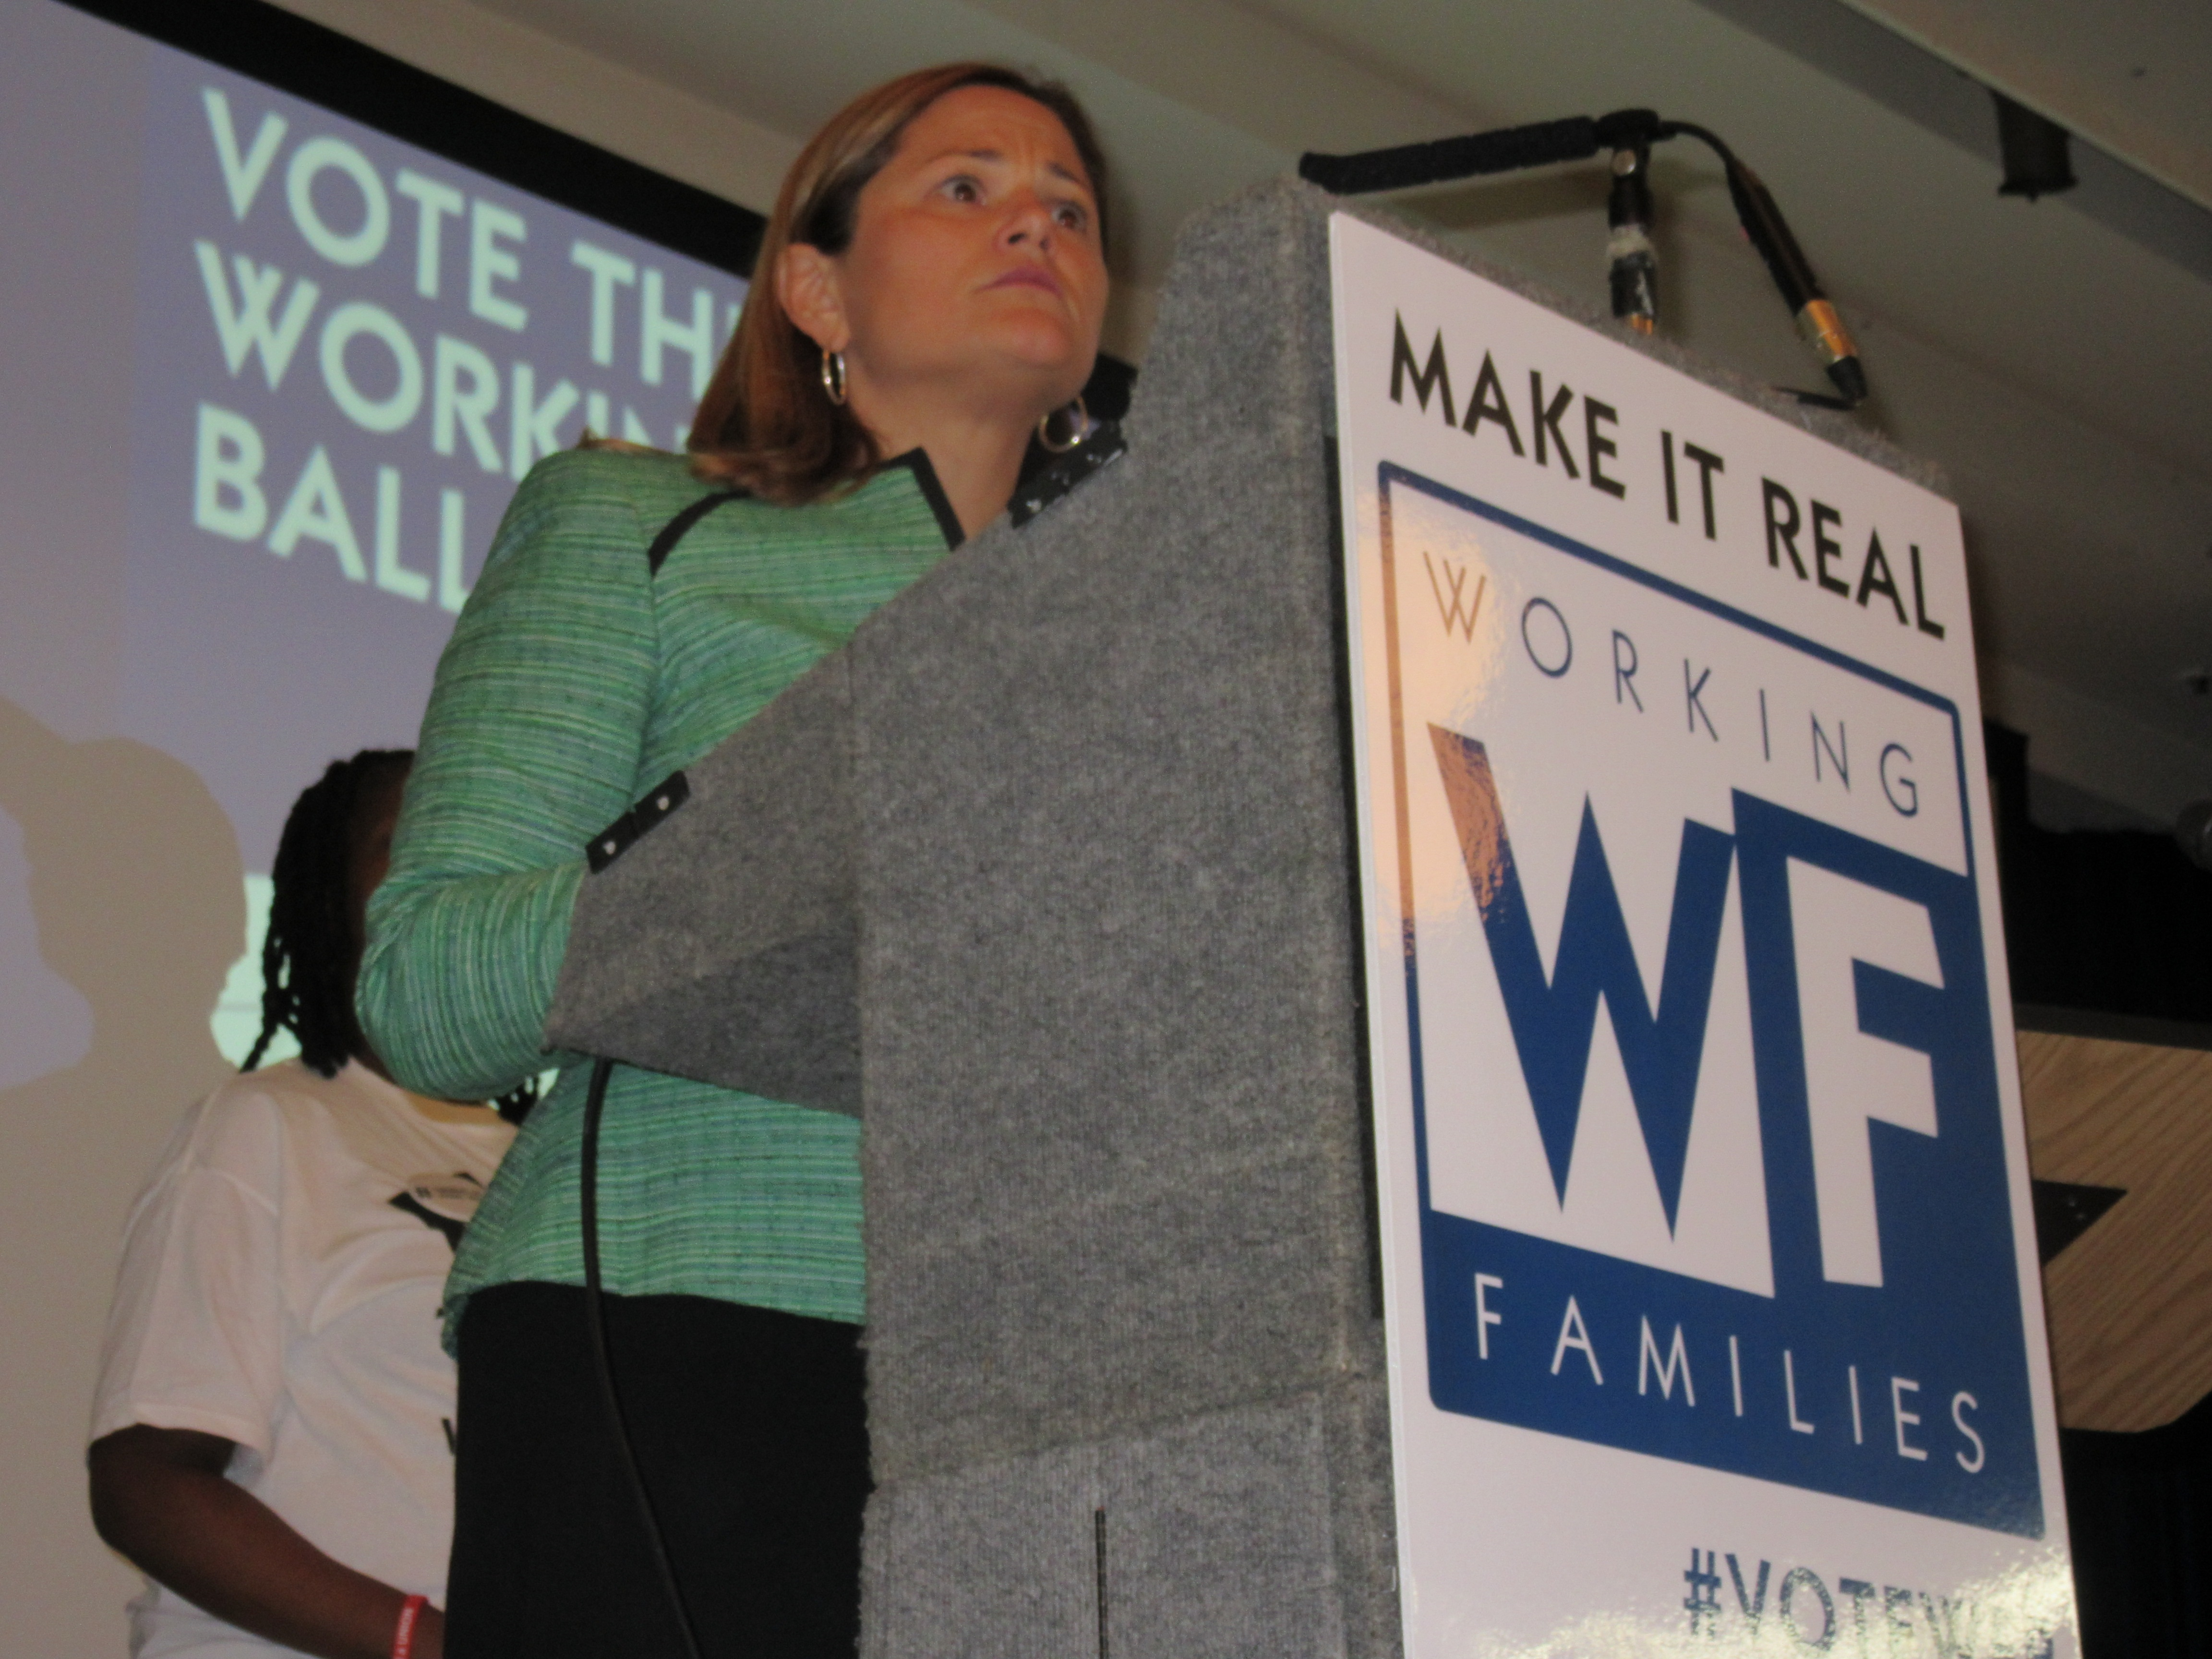 Council Speaker Melissa Mark-Viverito at a Working Families Party rally last month (Photo: Will Bredderman).